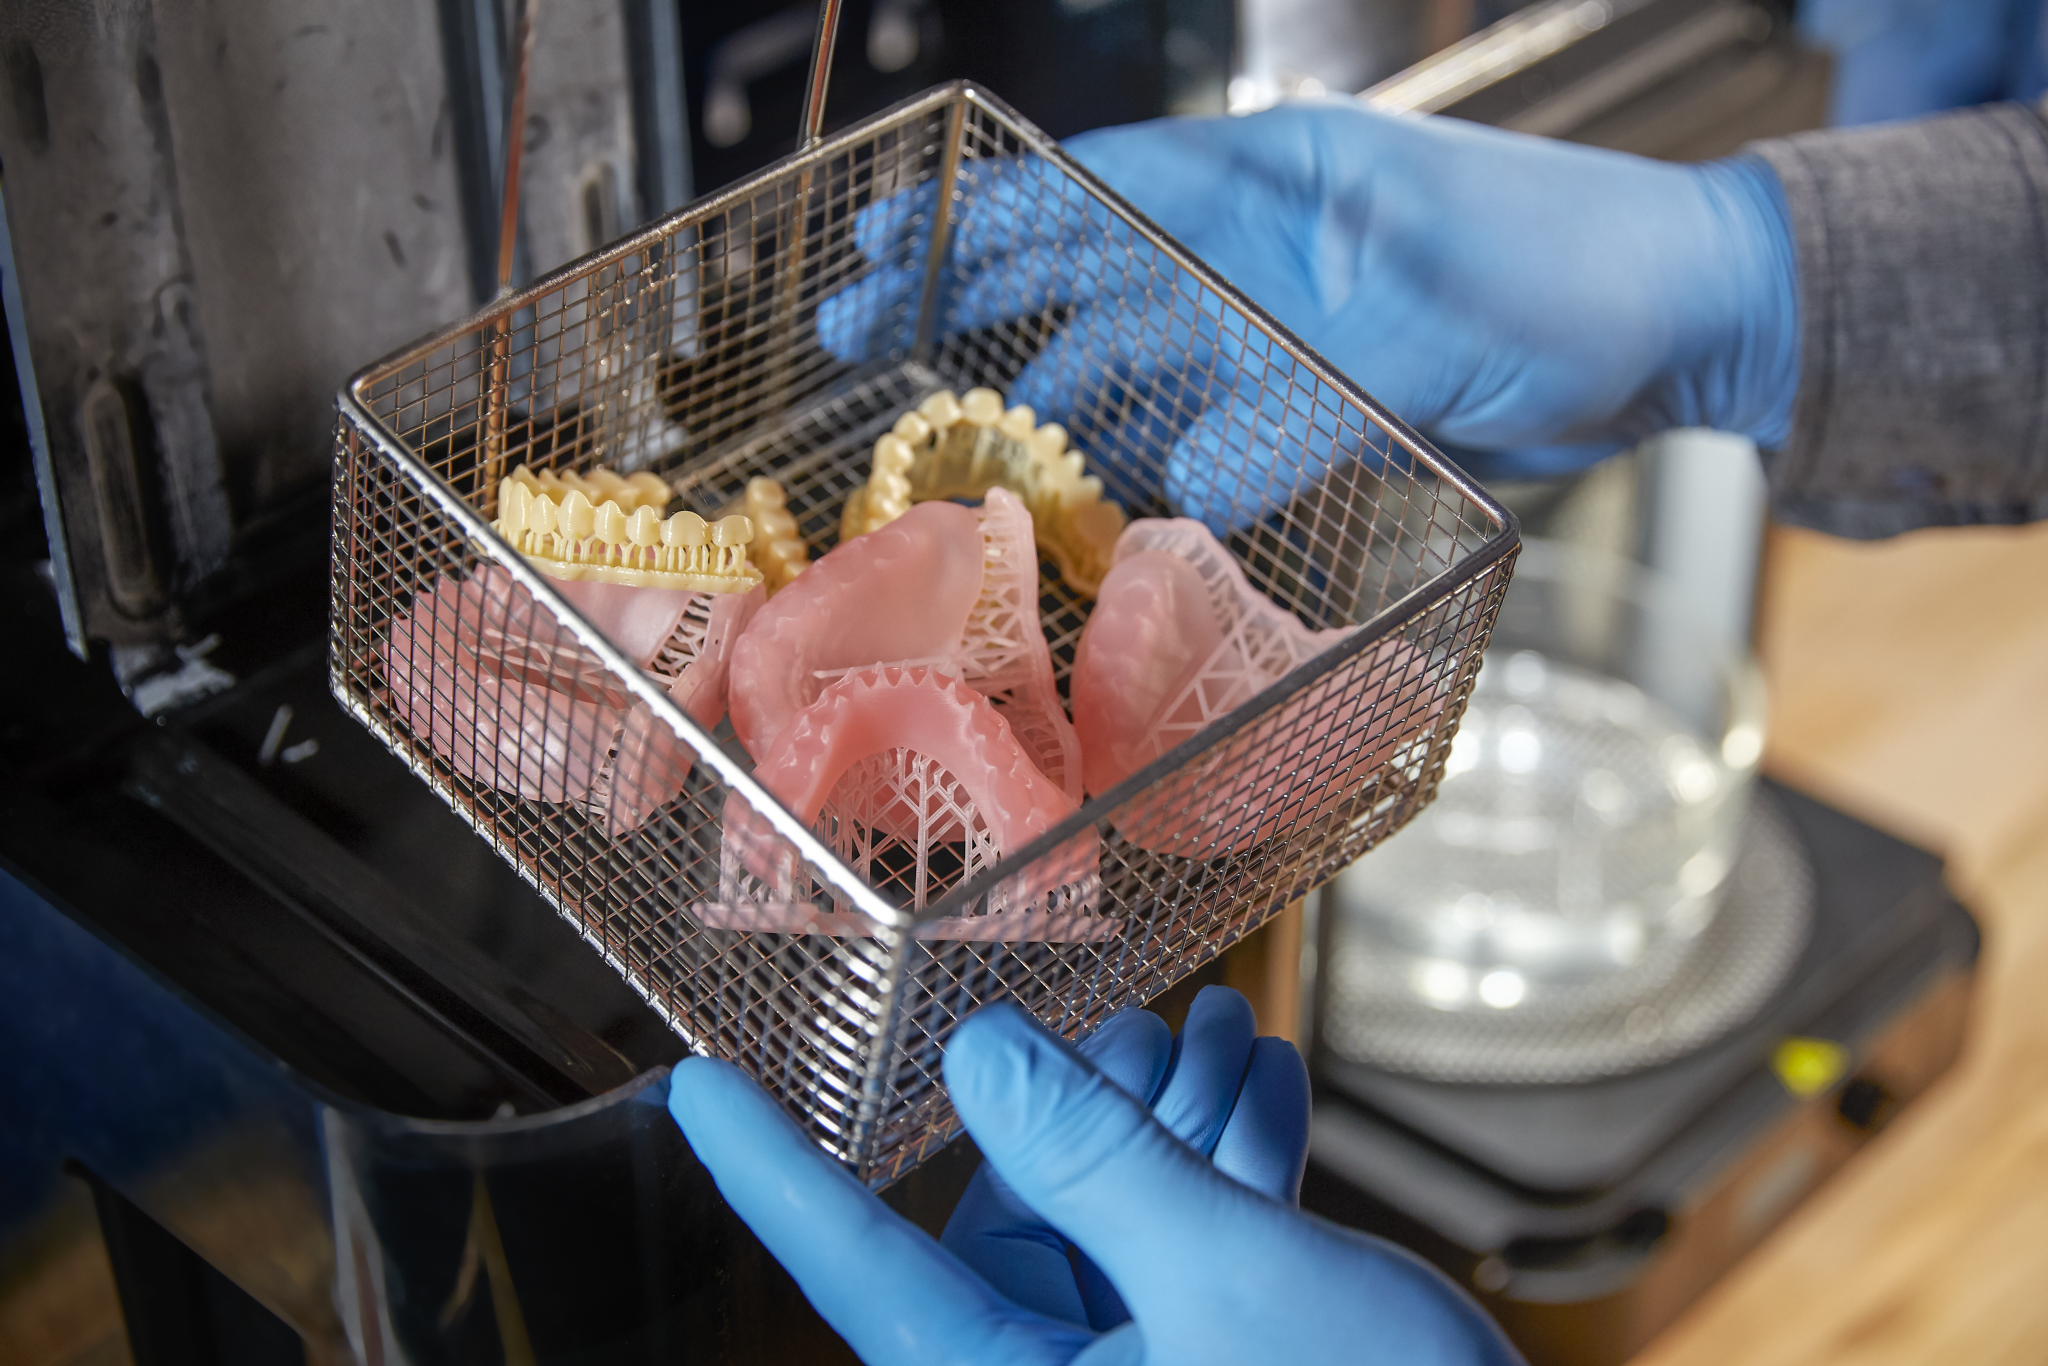 3D printed dental prosthetics from the Digital Denture resin. Photo via Formlabs.